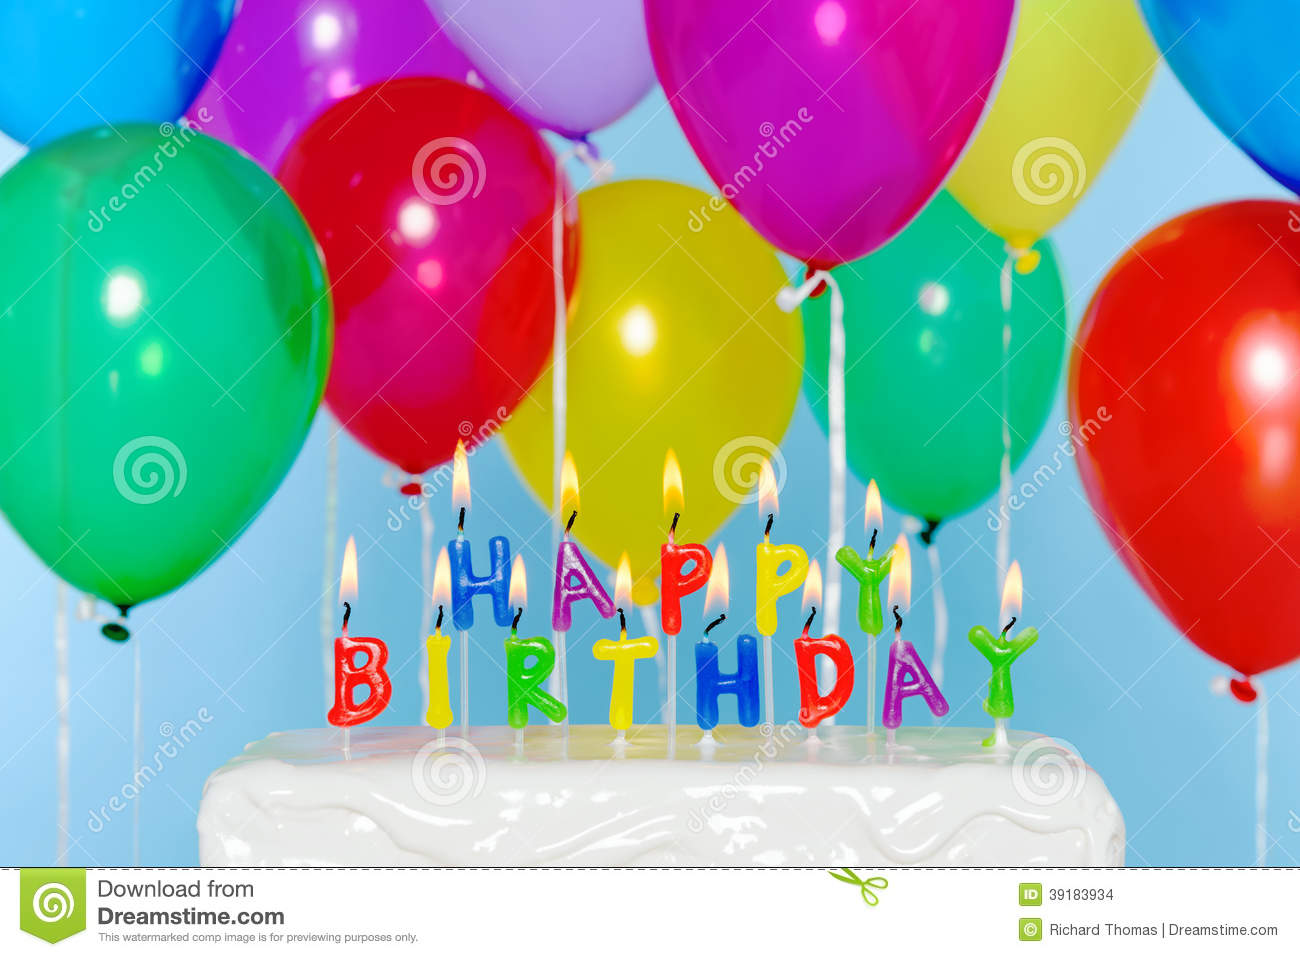 picture of birthday cake and balloons ; happy-birthday-candles-cake-balloons-candle-letters-colourful-background-39183934